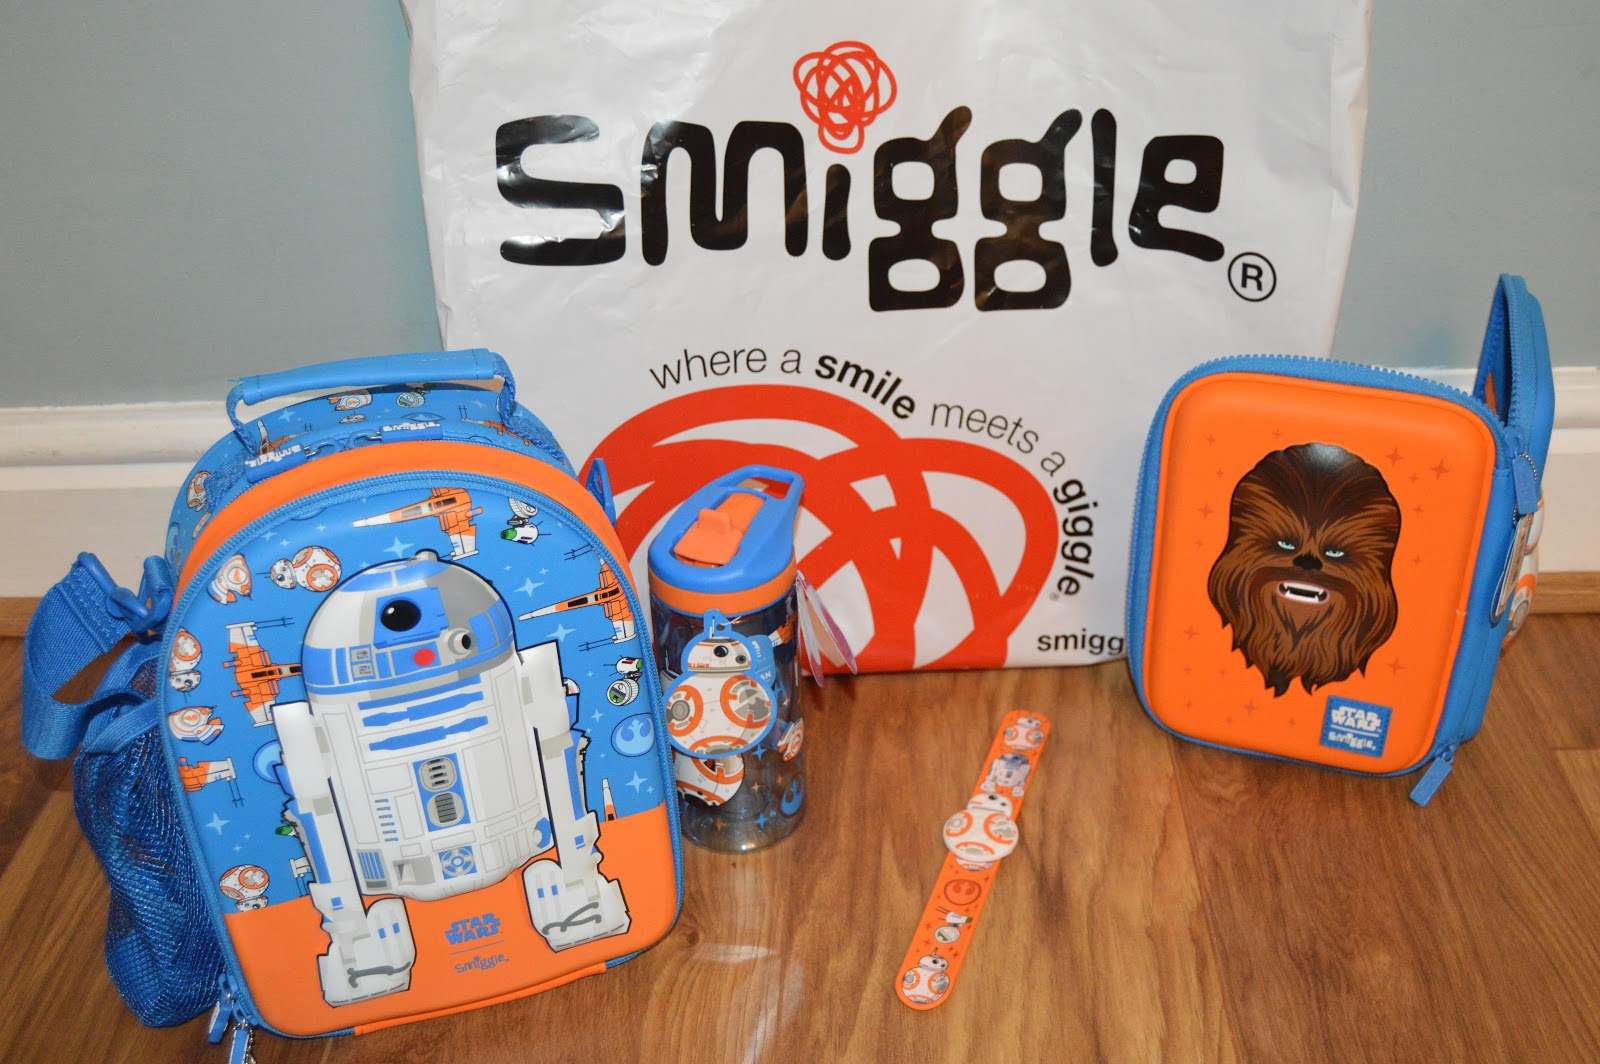 Smiggle Star wars lunchboxes and stationery